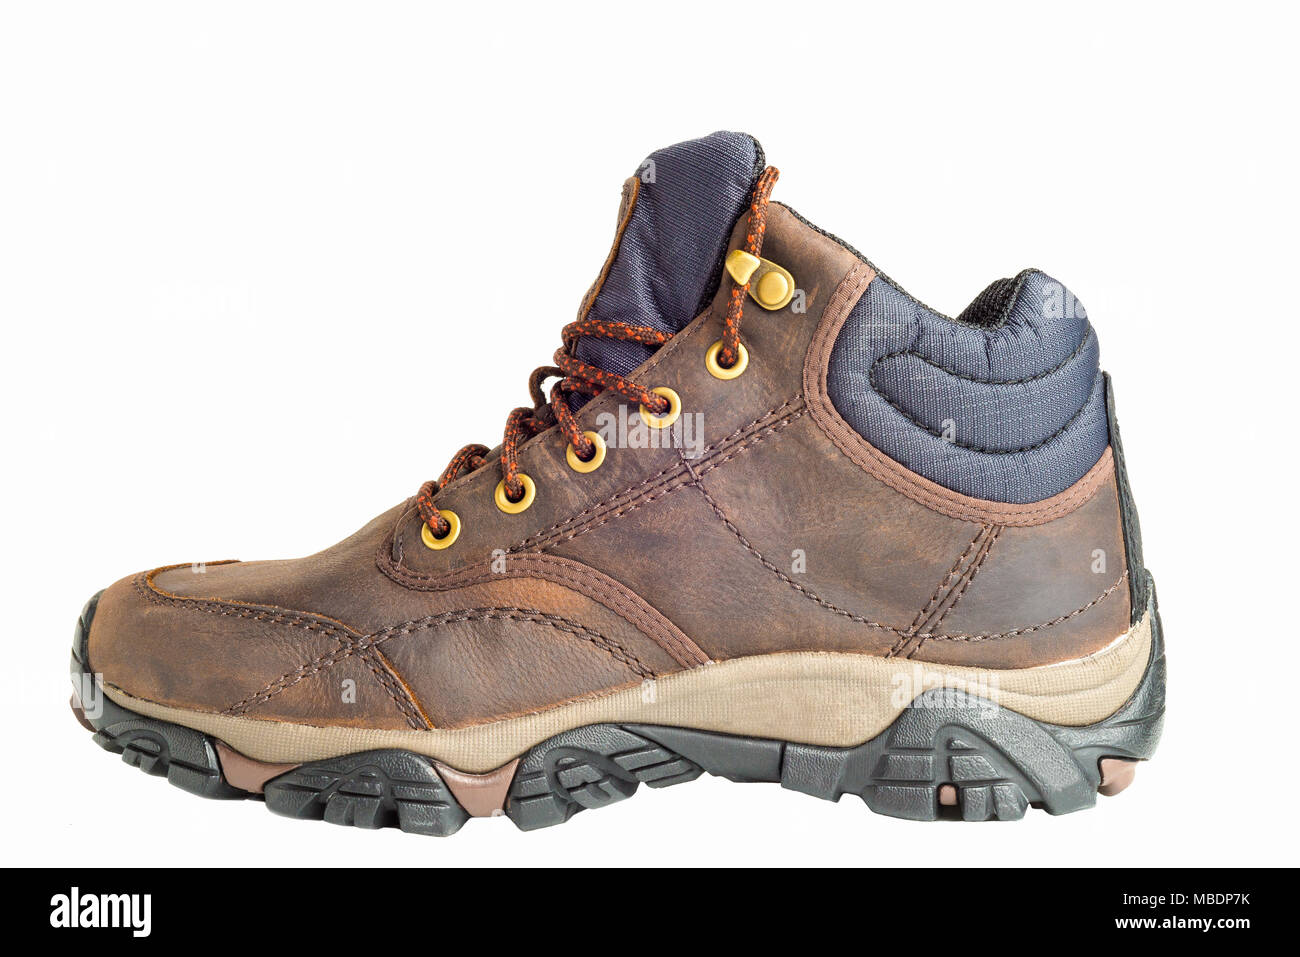 Pair of new hiking boots isolated on white background - Stock Image